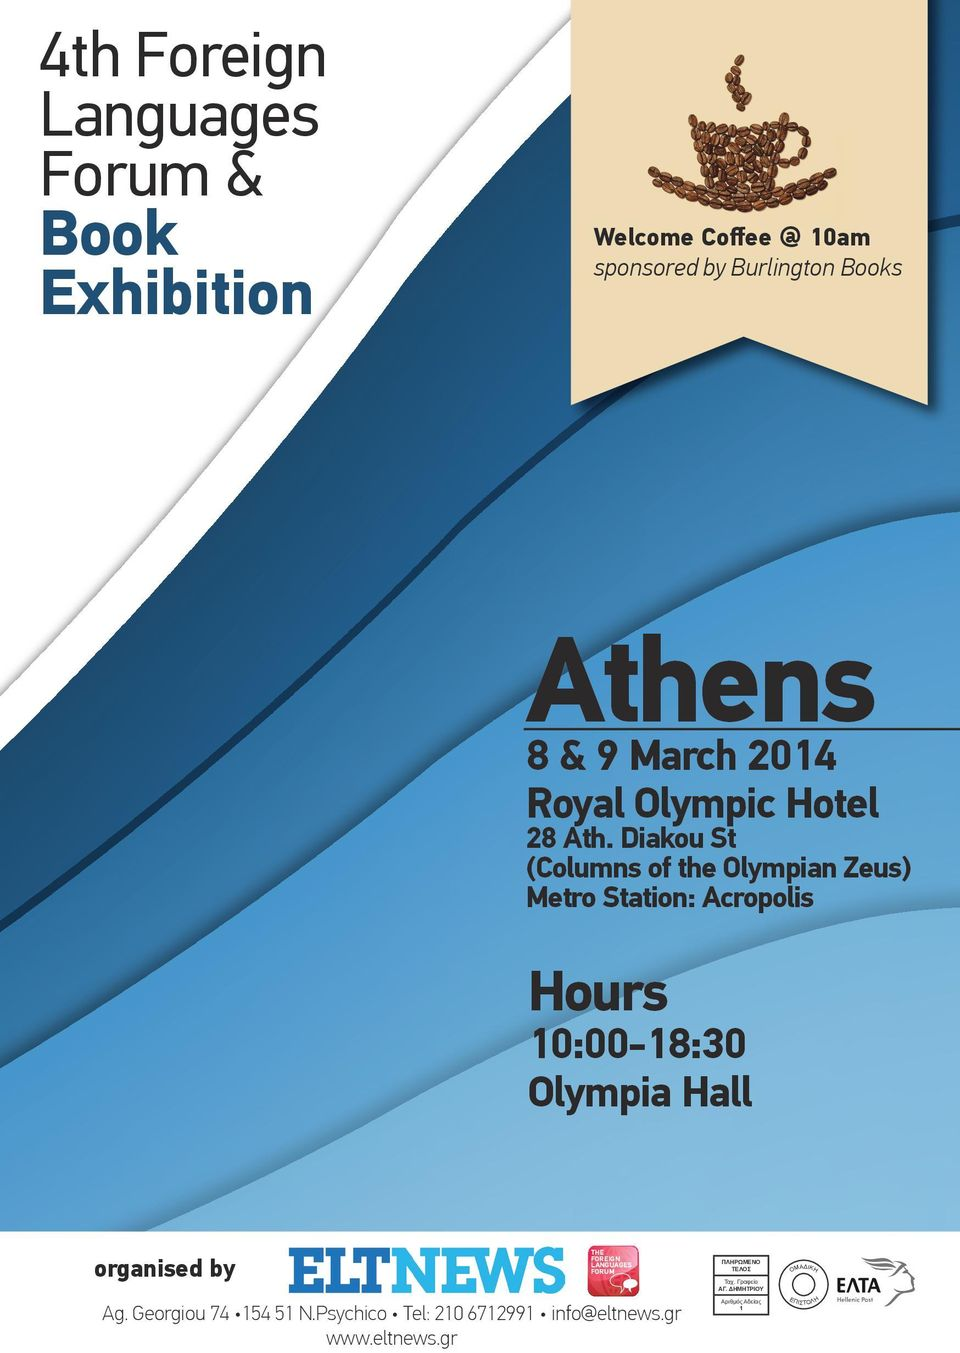 Diakou St (Columns of the Olympian Zeus) Metro Station: Acropolis Hours 0:00-18:30 1 Olympia Hall organised by